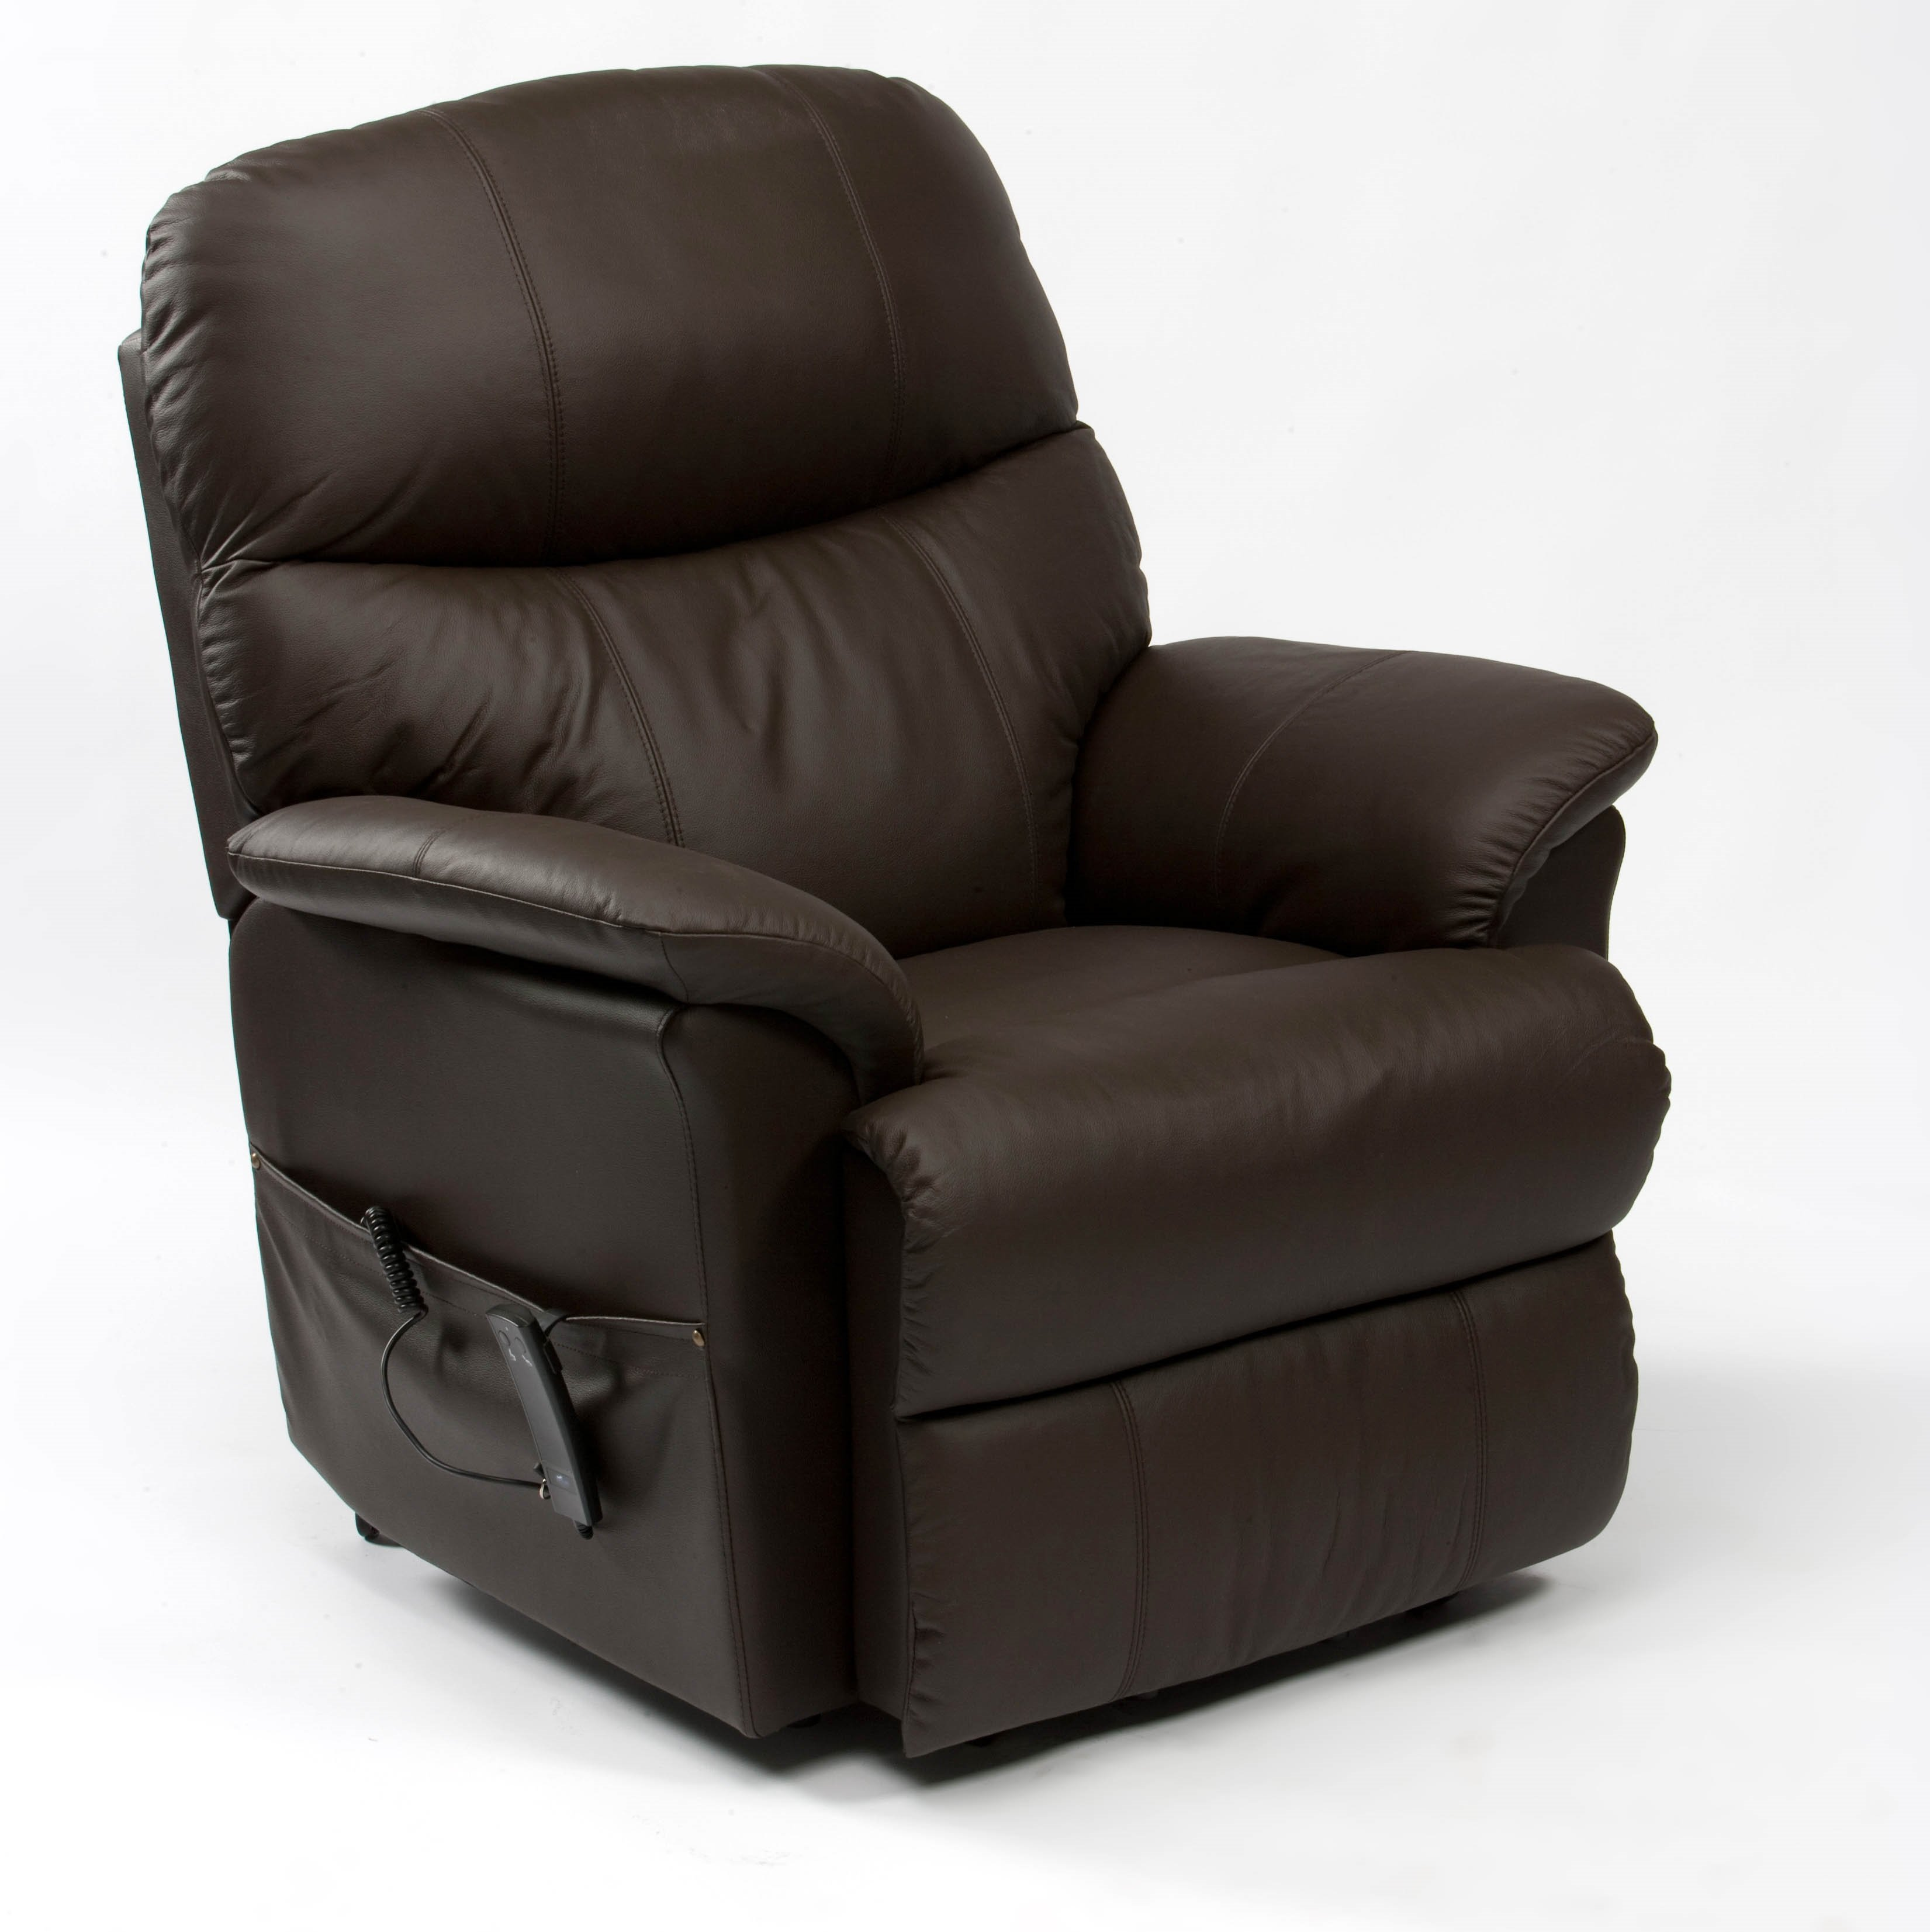 Emily Single Motor Riser Recliner £699 & Orthopaedic high chairs u0026 riser recliners in Liverpool islam-shia.org